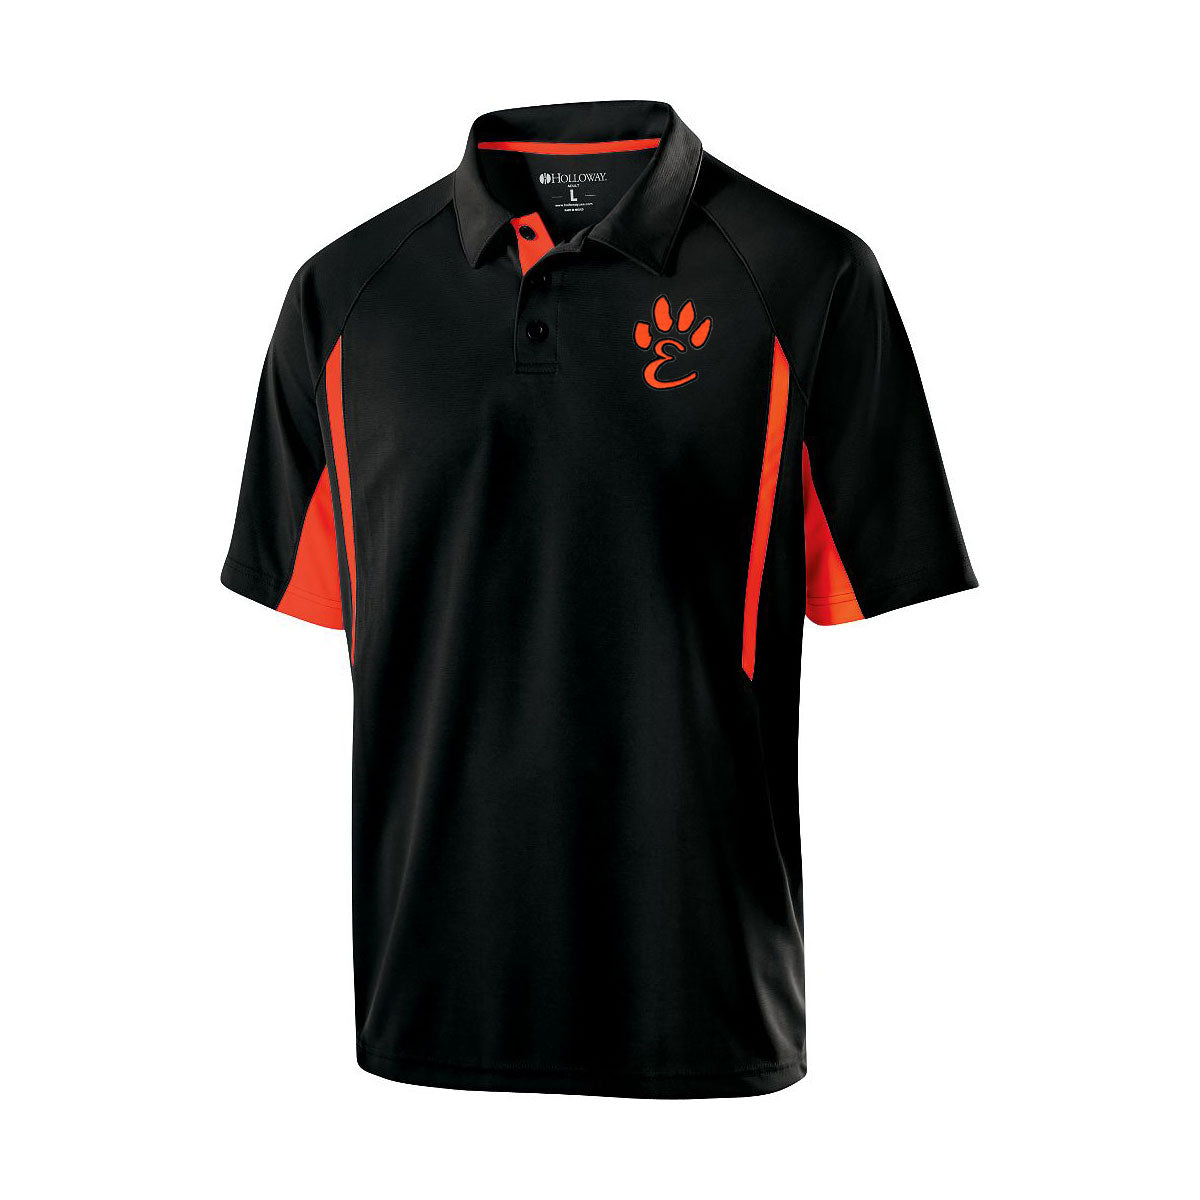 Edwardsville High School Avenger Polo